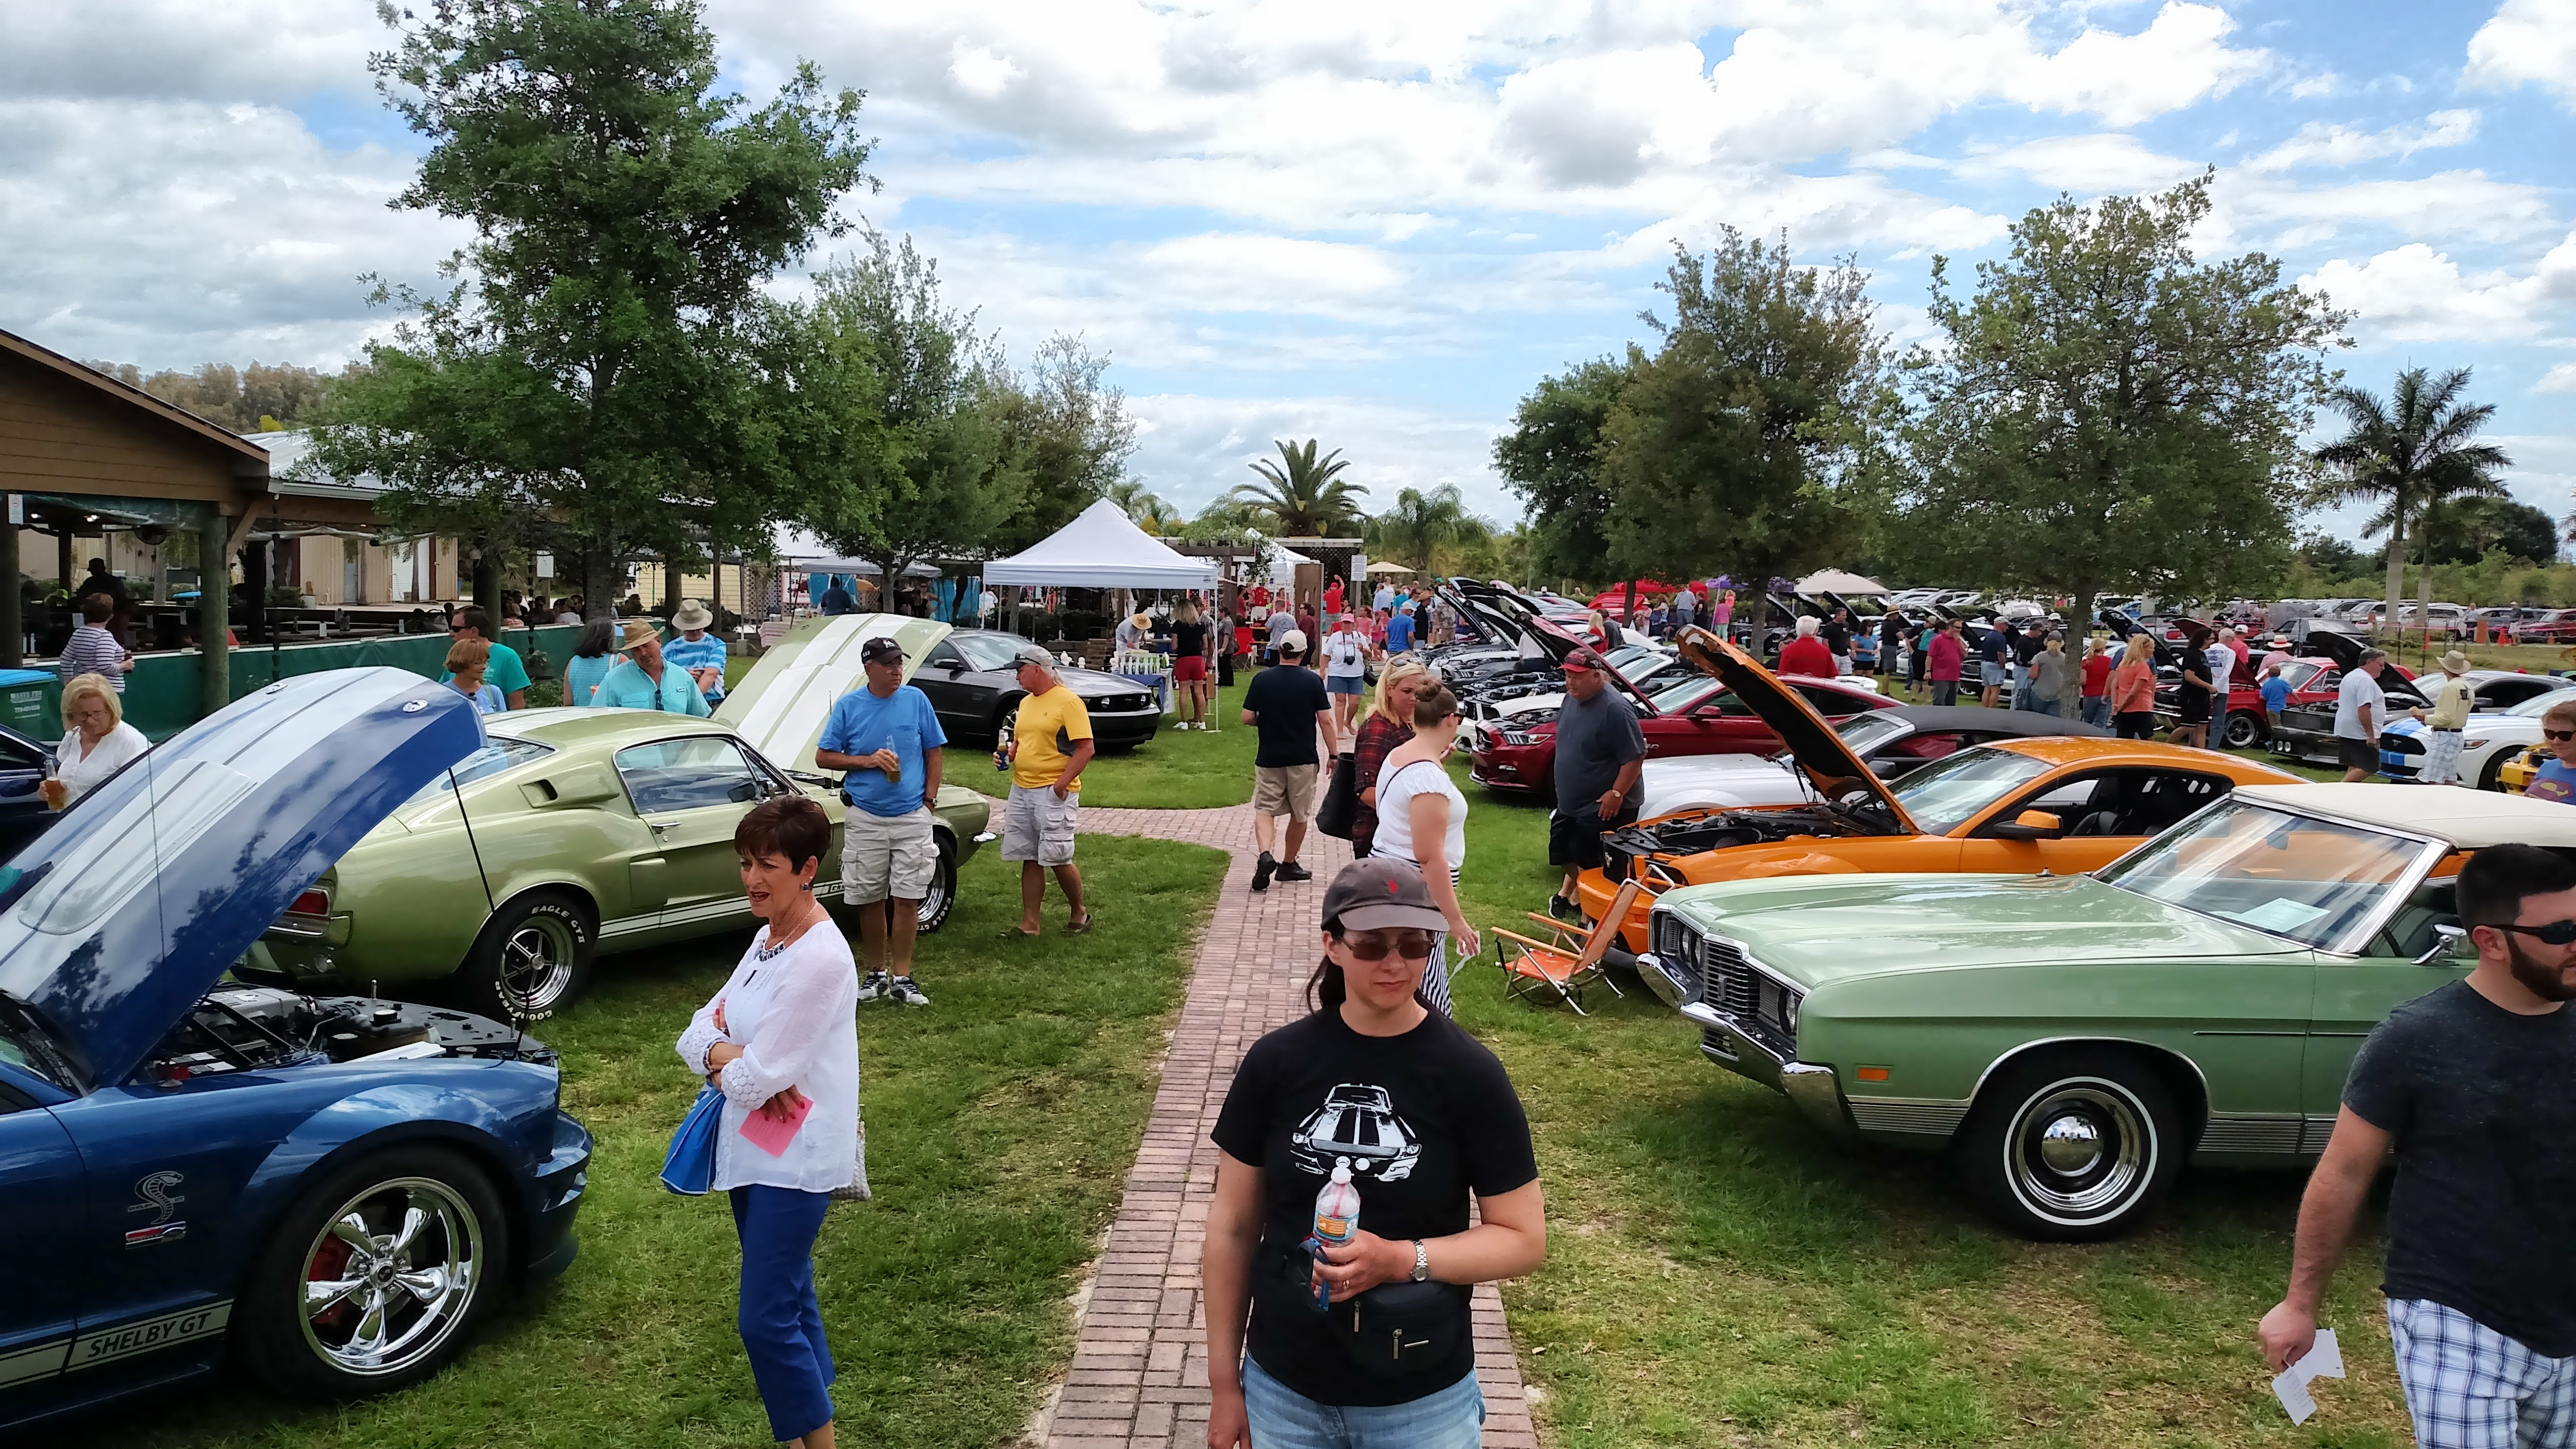 Horsin Around In The Vineyard Mustang Car Show With The Beatle - Vero beach car show